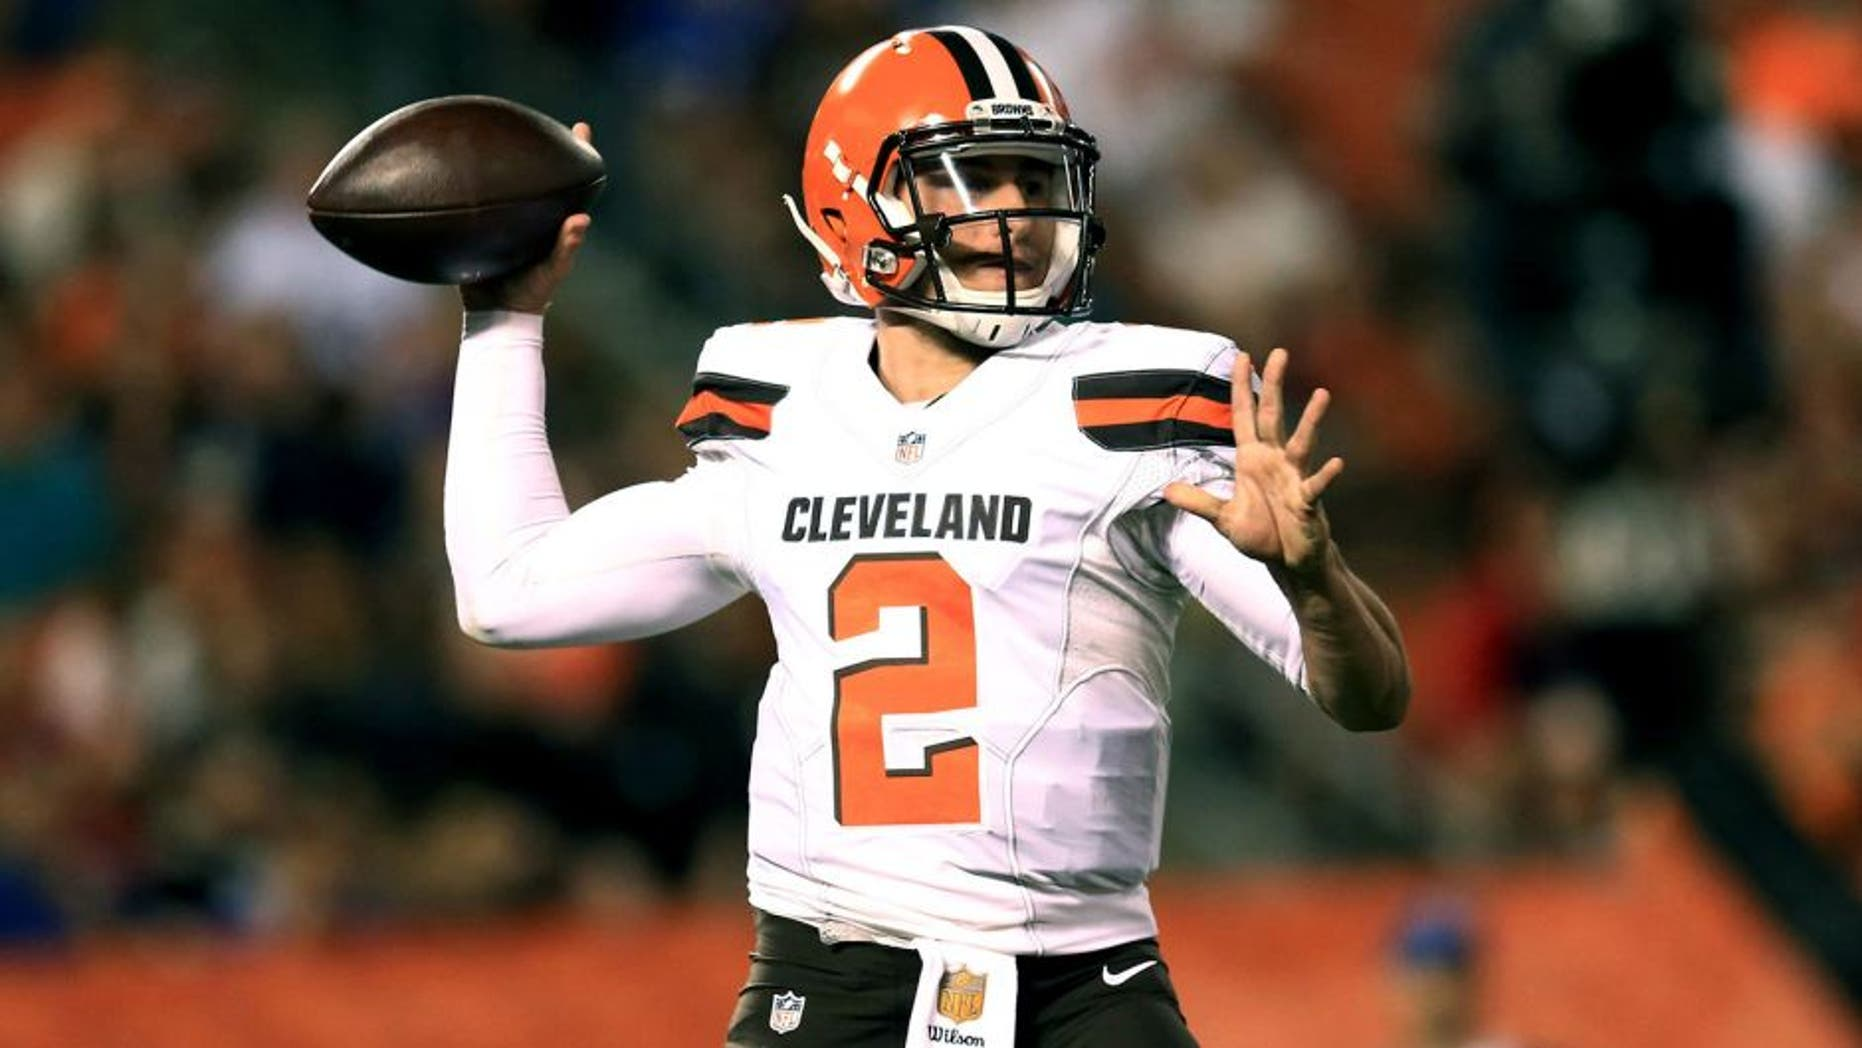 Aug 20, 2015; Cleveland, OH, USA; Cleveland Browns quarterback Johnny Manziel (2) throws a pass during the fourth quarter of a preseason game against the Buffalo Bills at FirstEnergy Stadium. Mandatory Credit: Andrew Weber-USA TODAY Sports